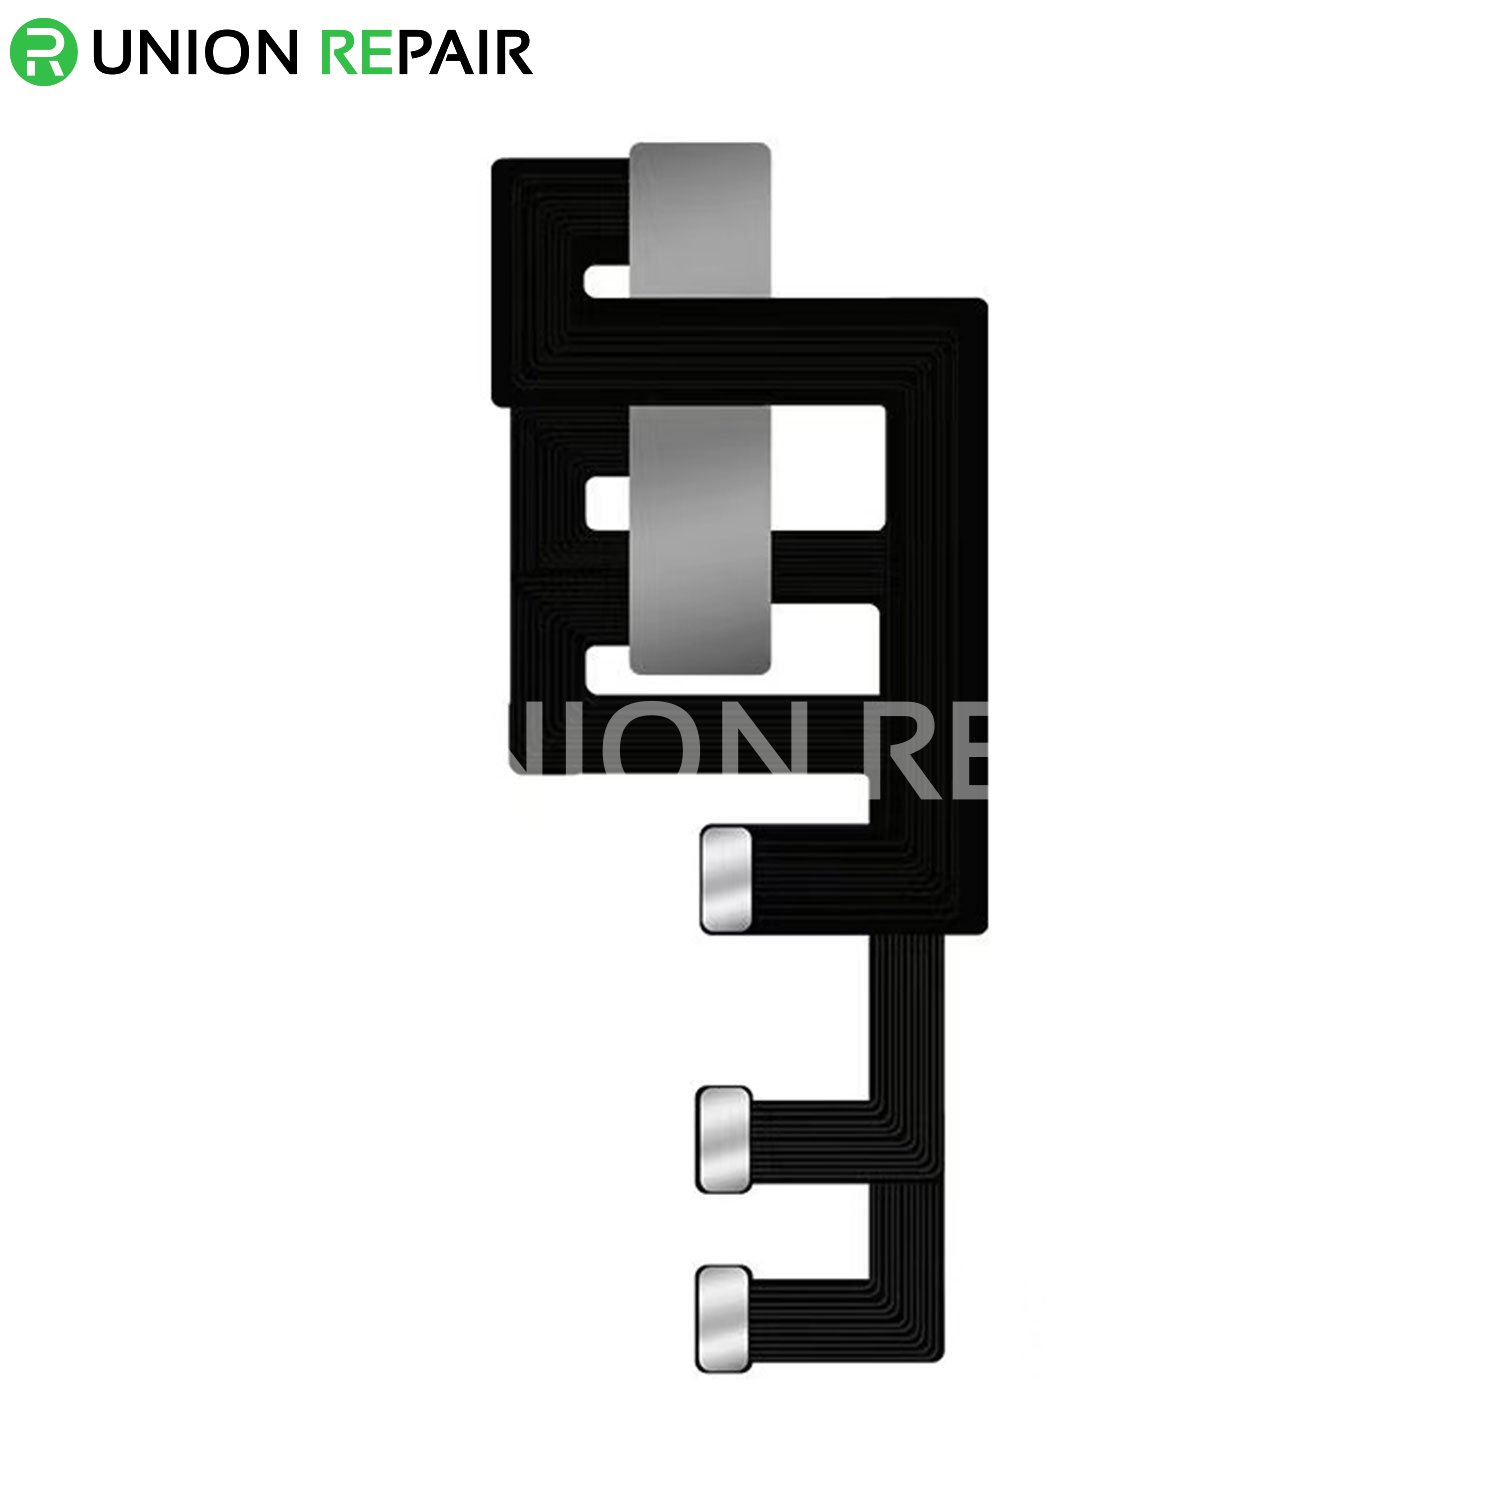 WYLIE Dot Matrix Extension Cable for iPhone Face Repair